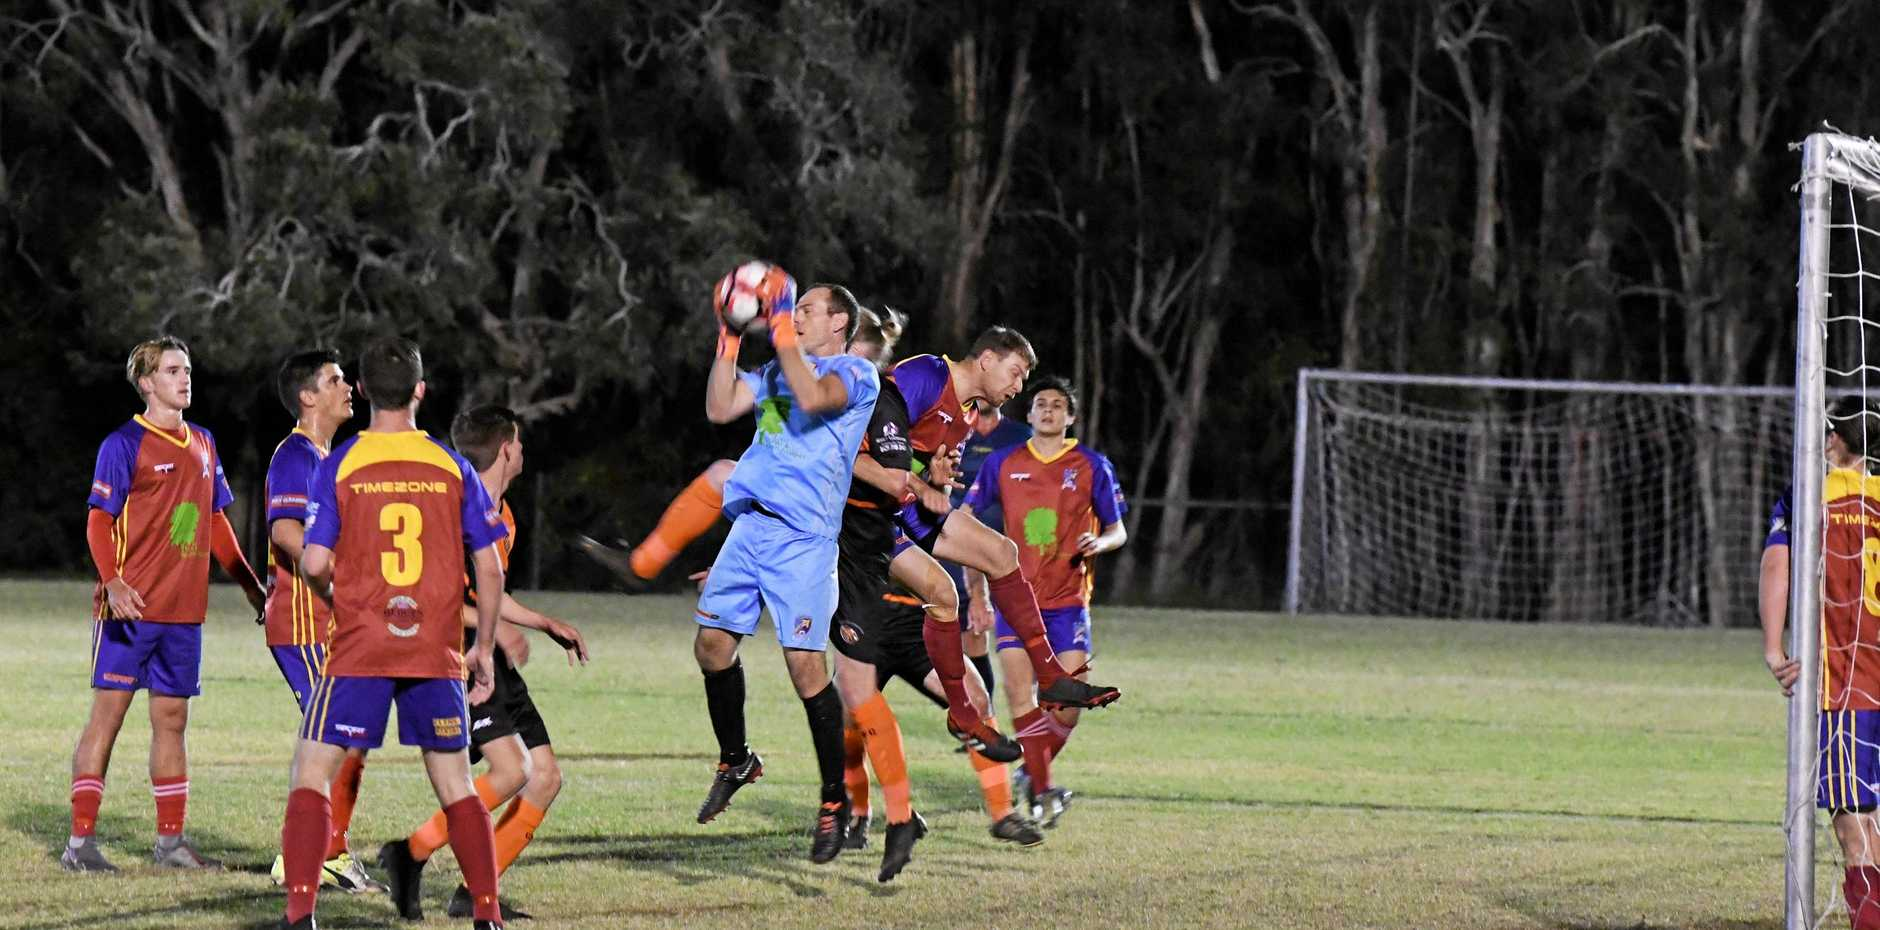 KSS Jets goalkeeper Tim Murray leaps high to stop the cross from the corner.